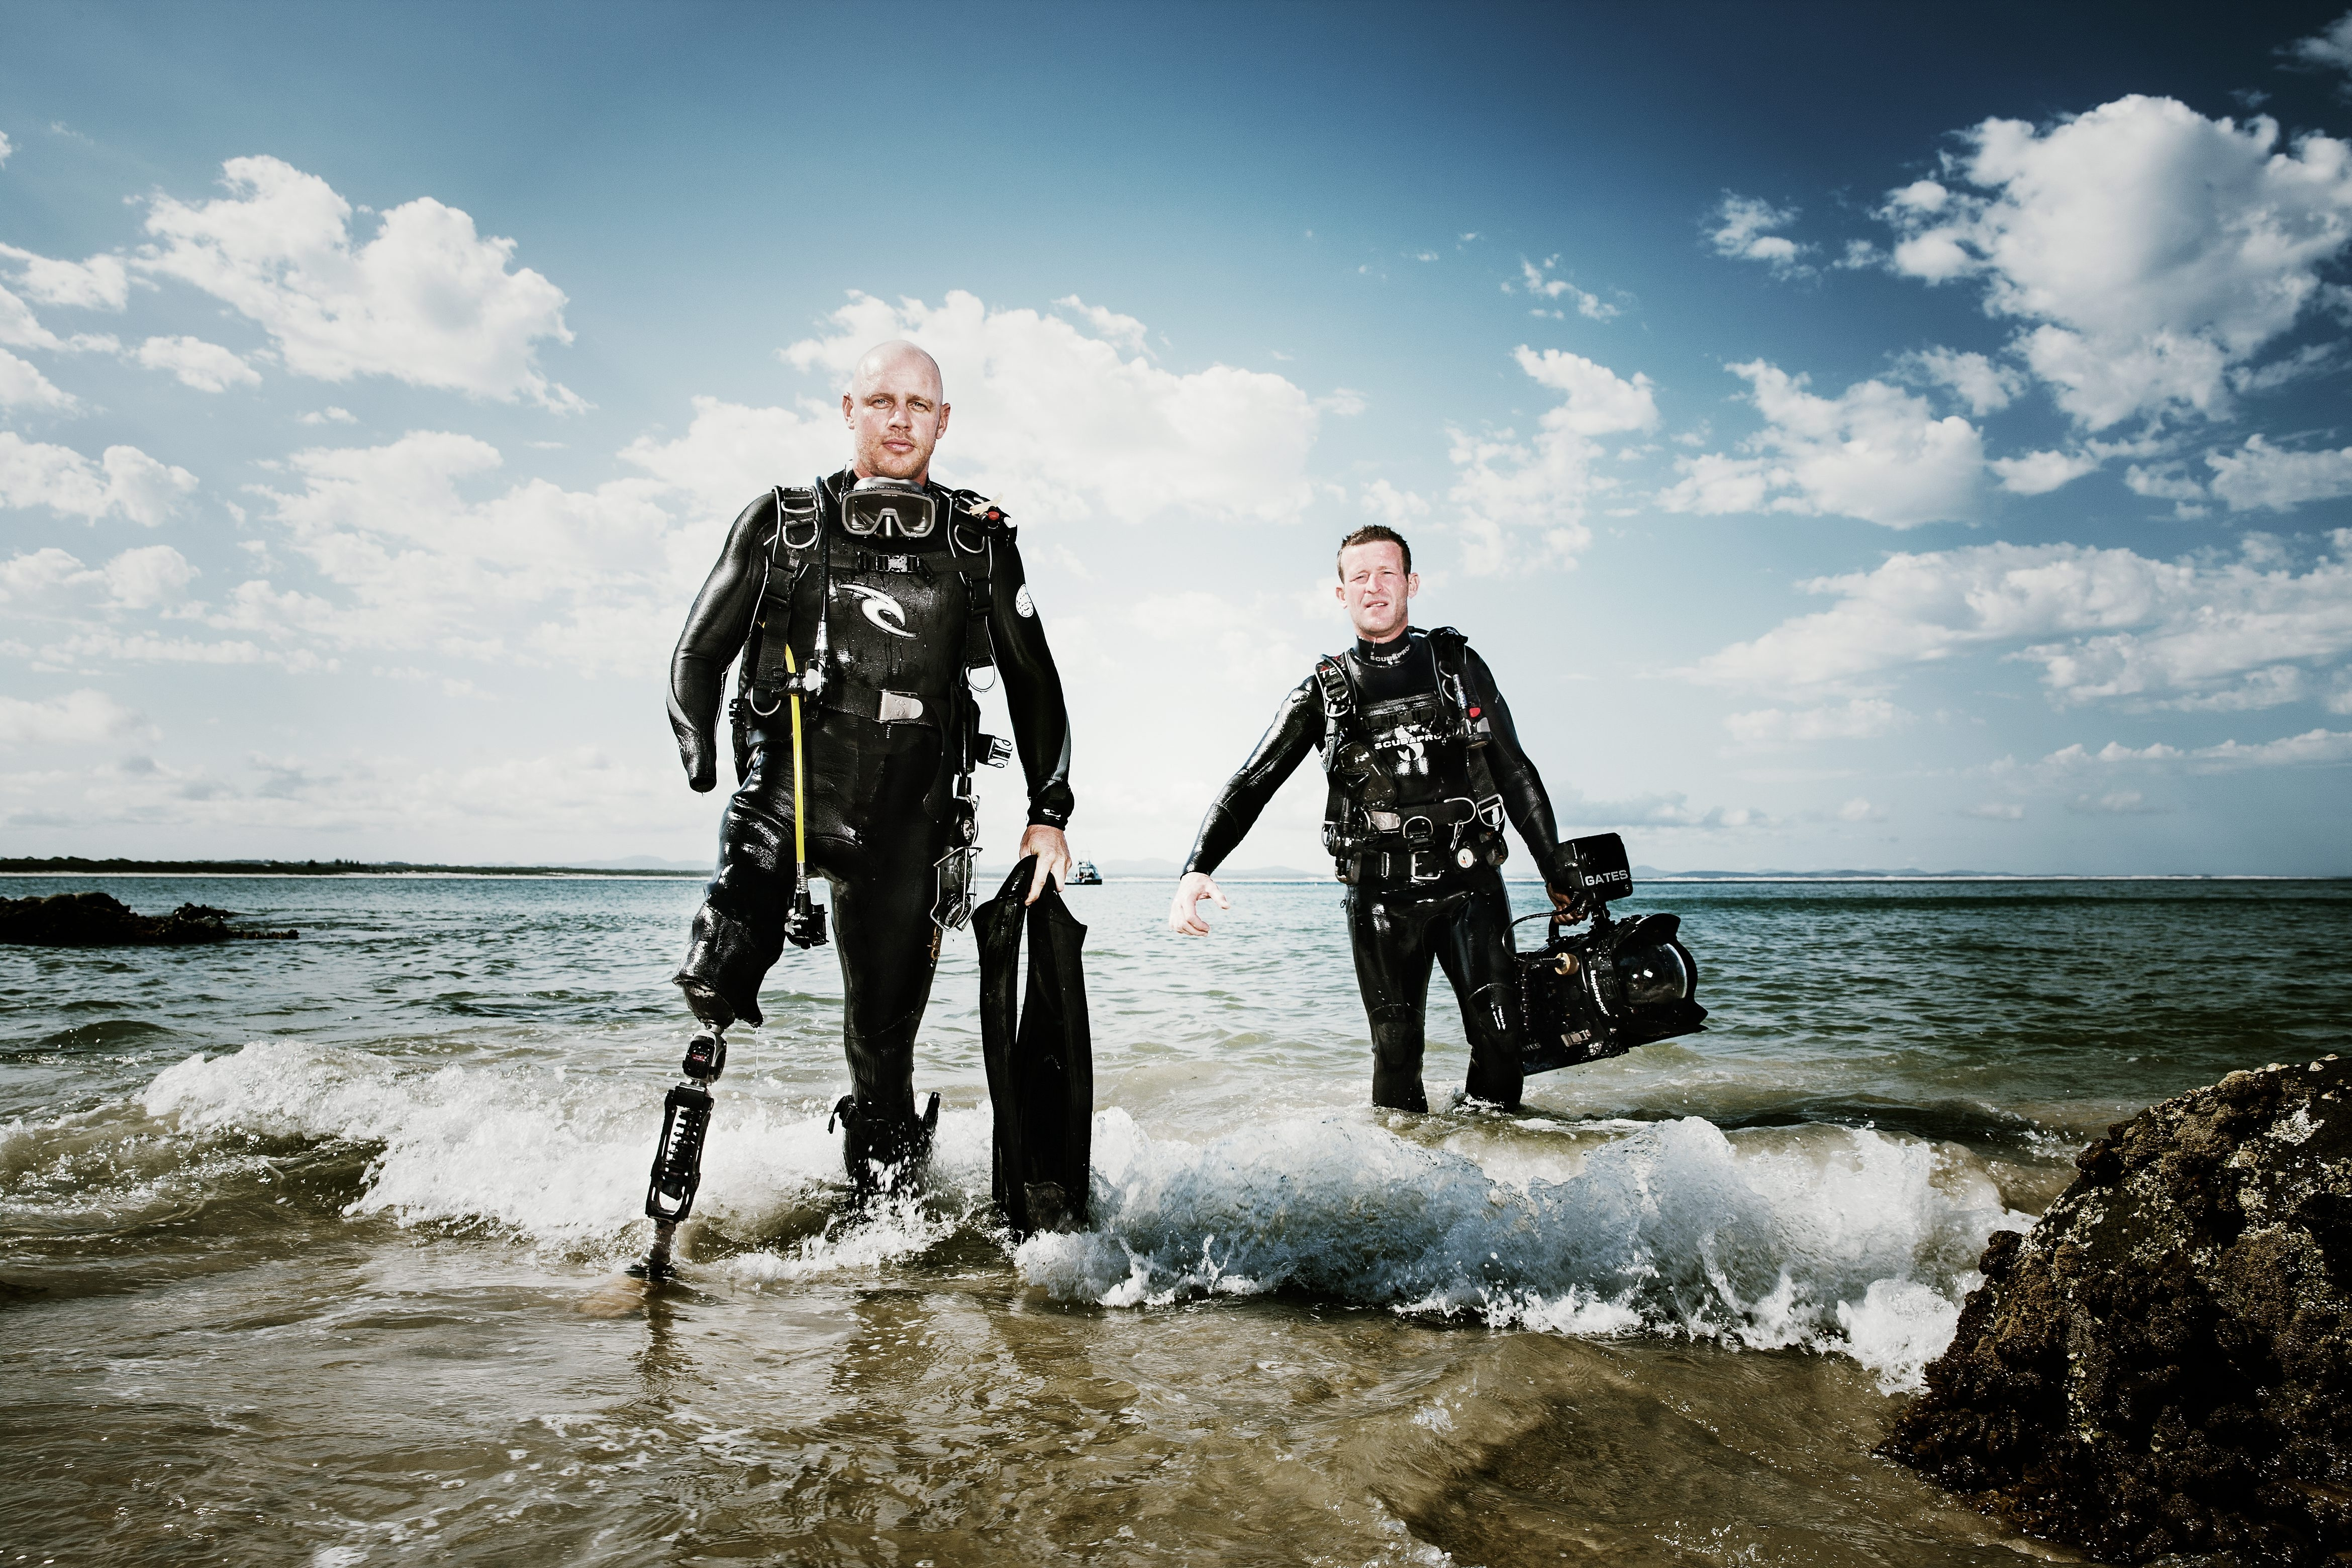 Shark attack survivor Paul de Gelder, left, and Andy Casagrande are featured during Shark Week, beginning today on the Discovery Channel.